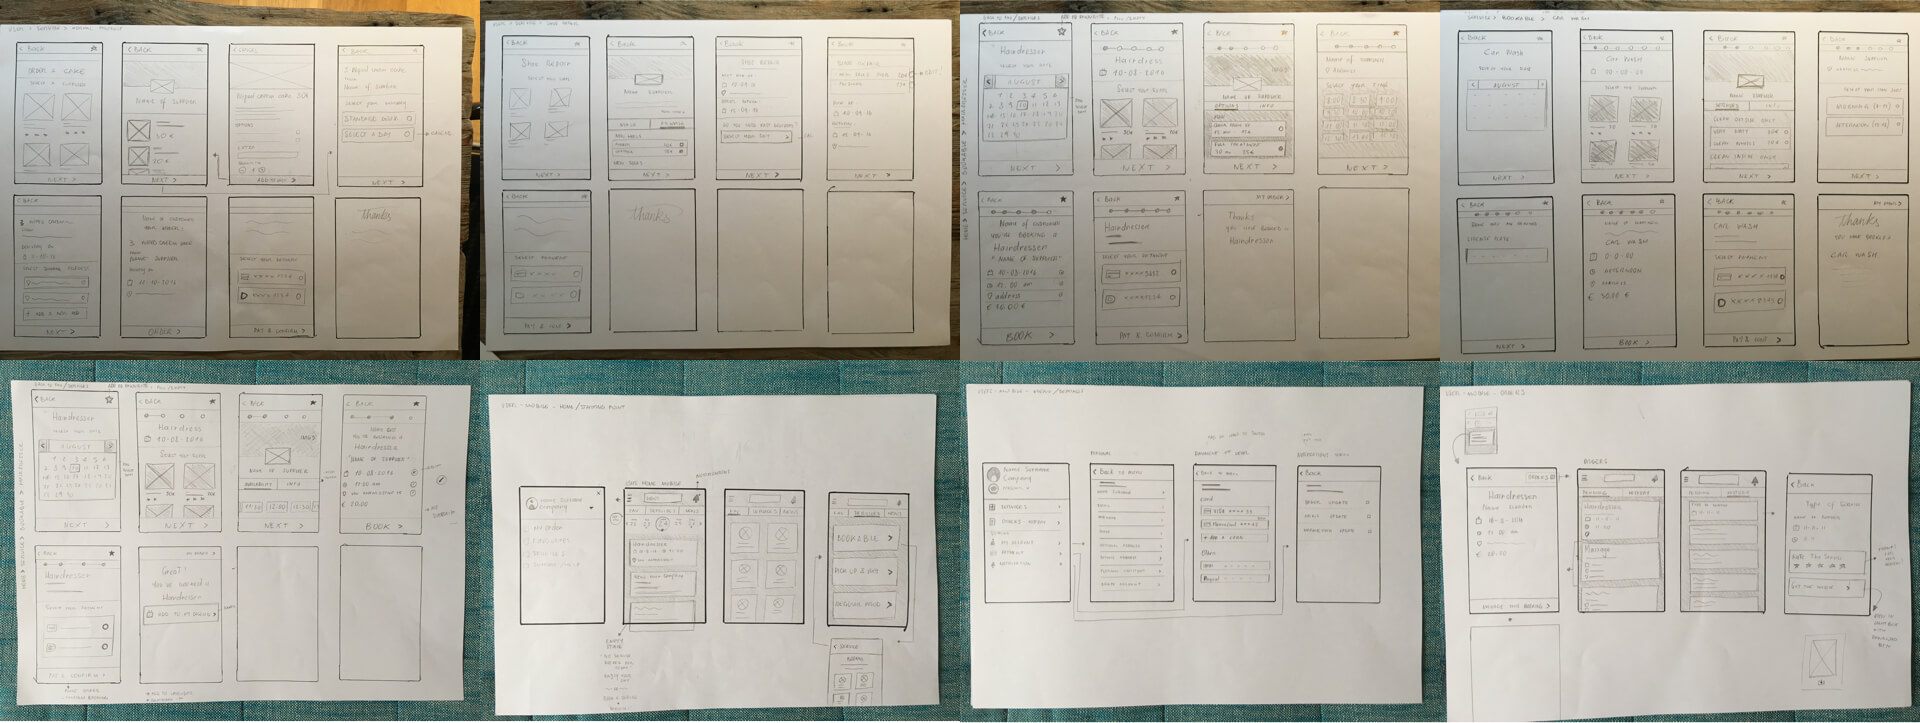 TOS_Wireframes